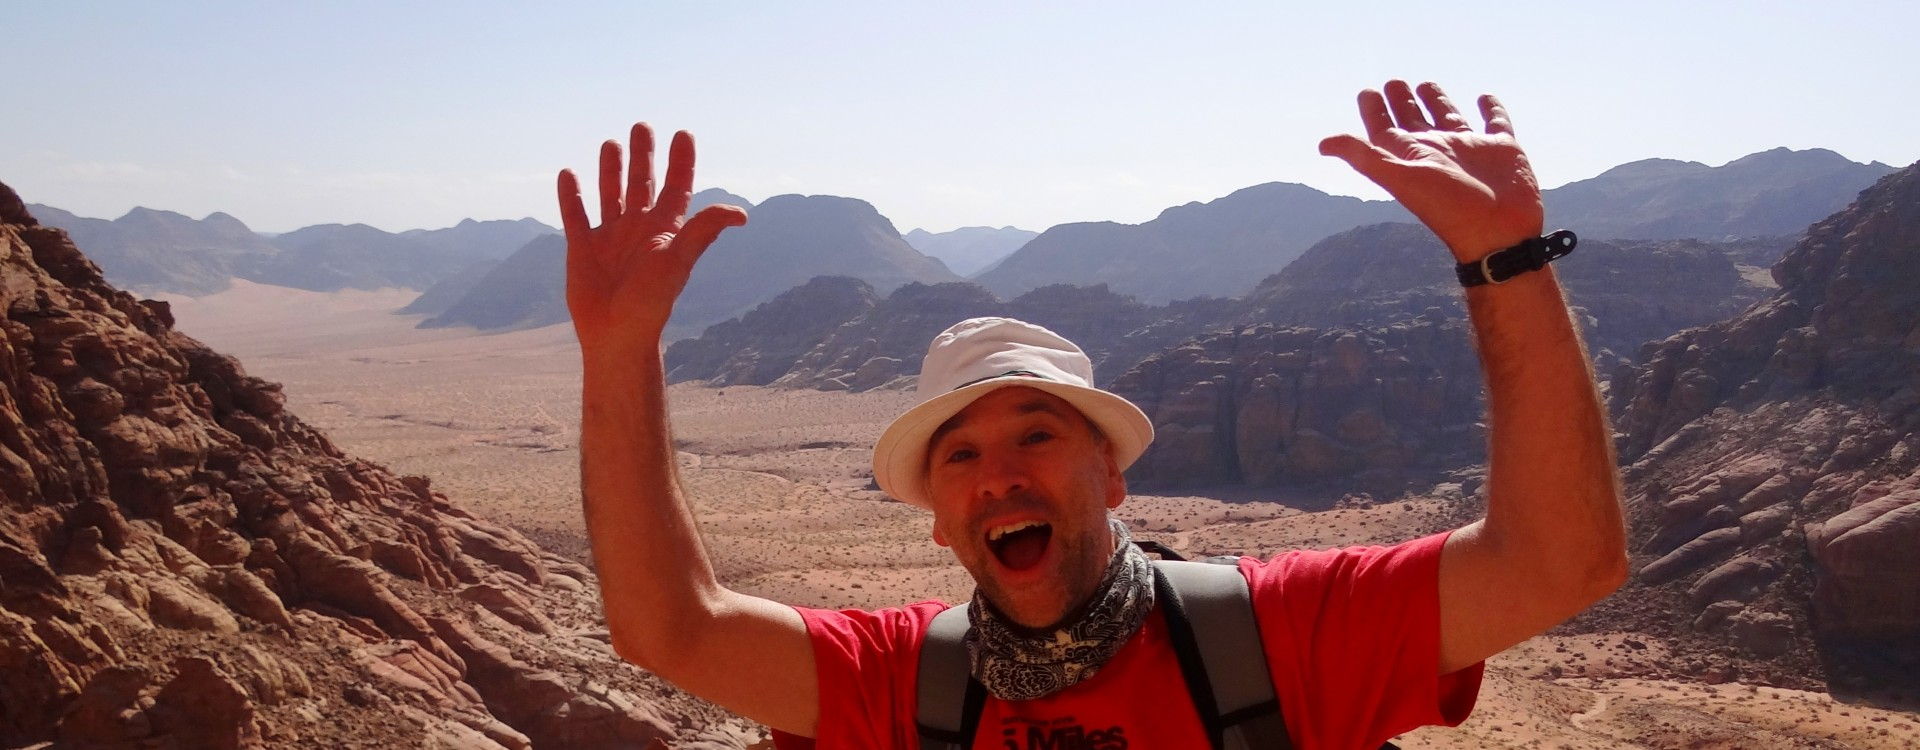 Hello Mum, I'm here in Wadi Rum